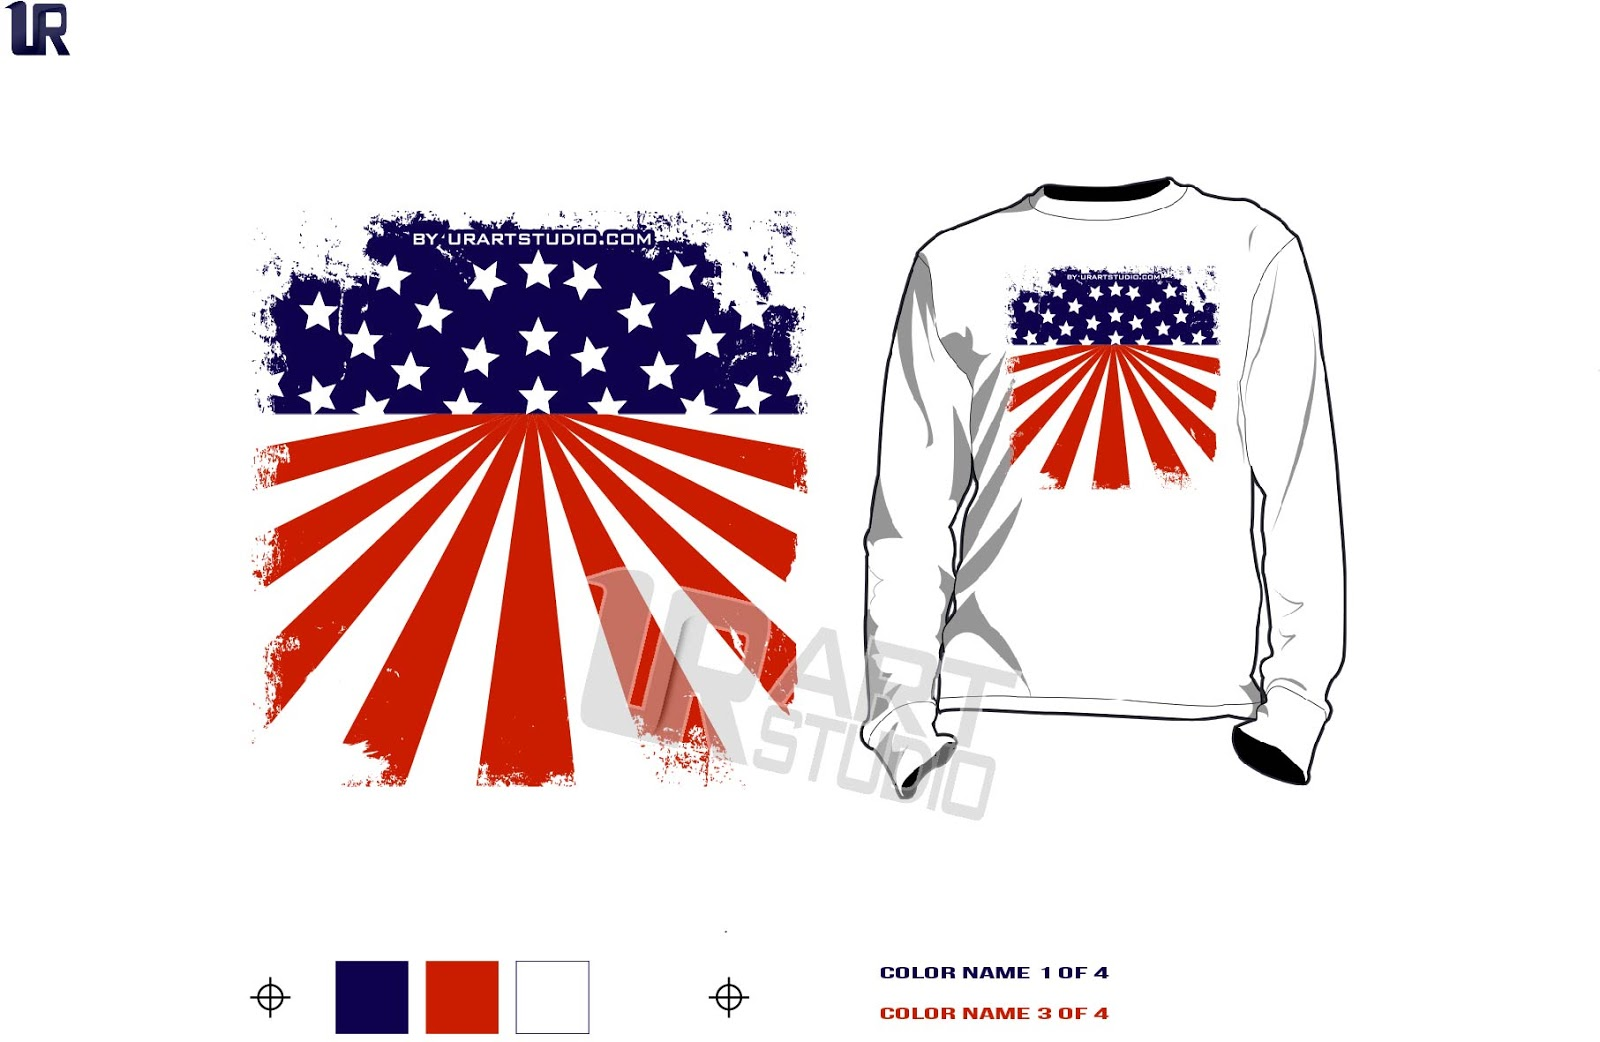 Design t shirt logo free - Free Download Color Separated American Flag Vector Design For Print On Tshirt And Other Apparel